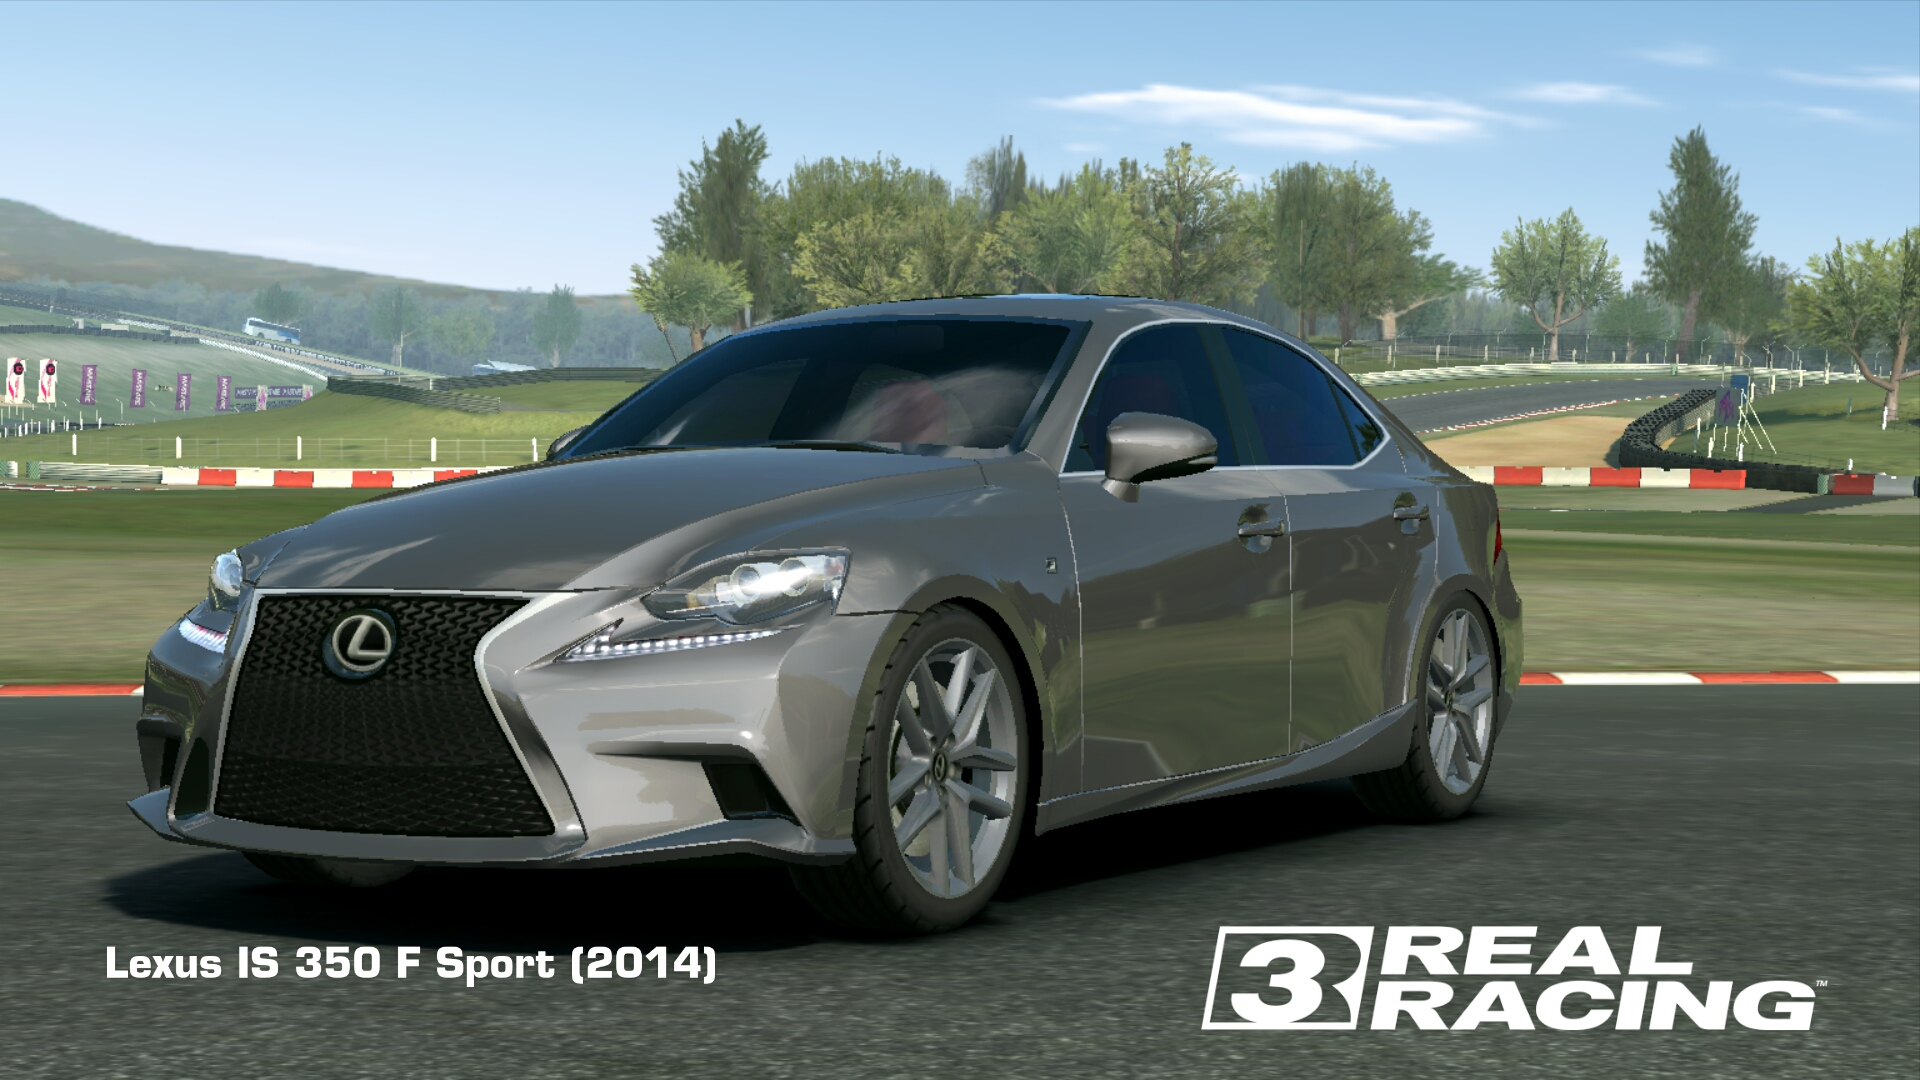 Image Showcase Lexus IS 350 F Sport